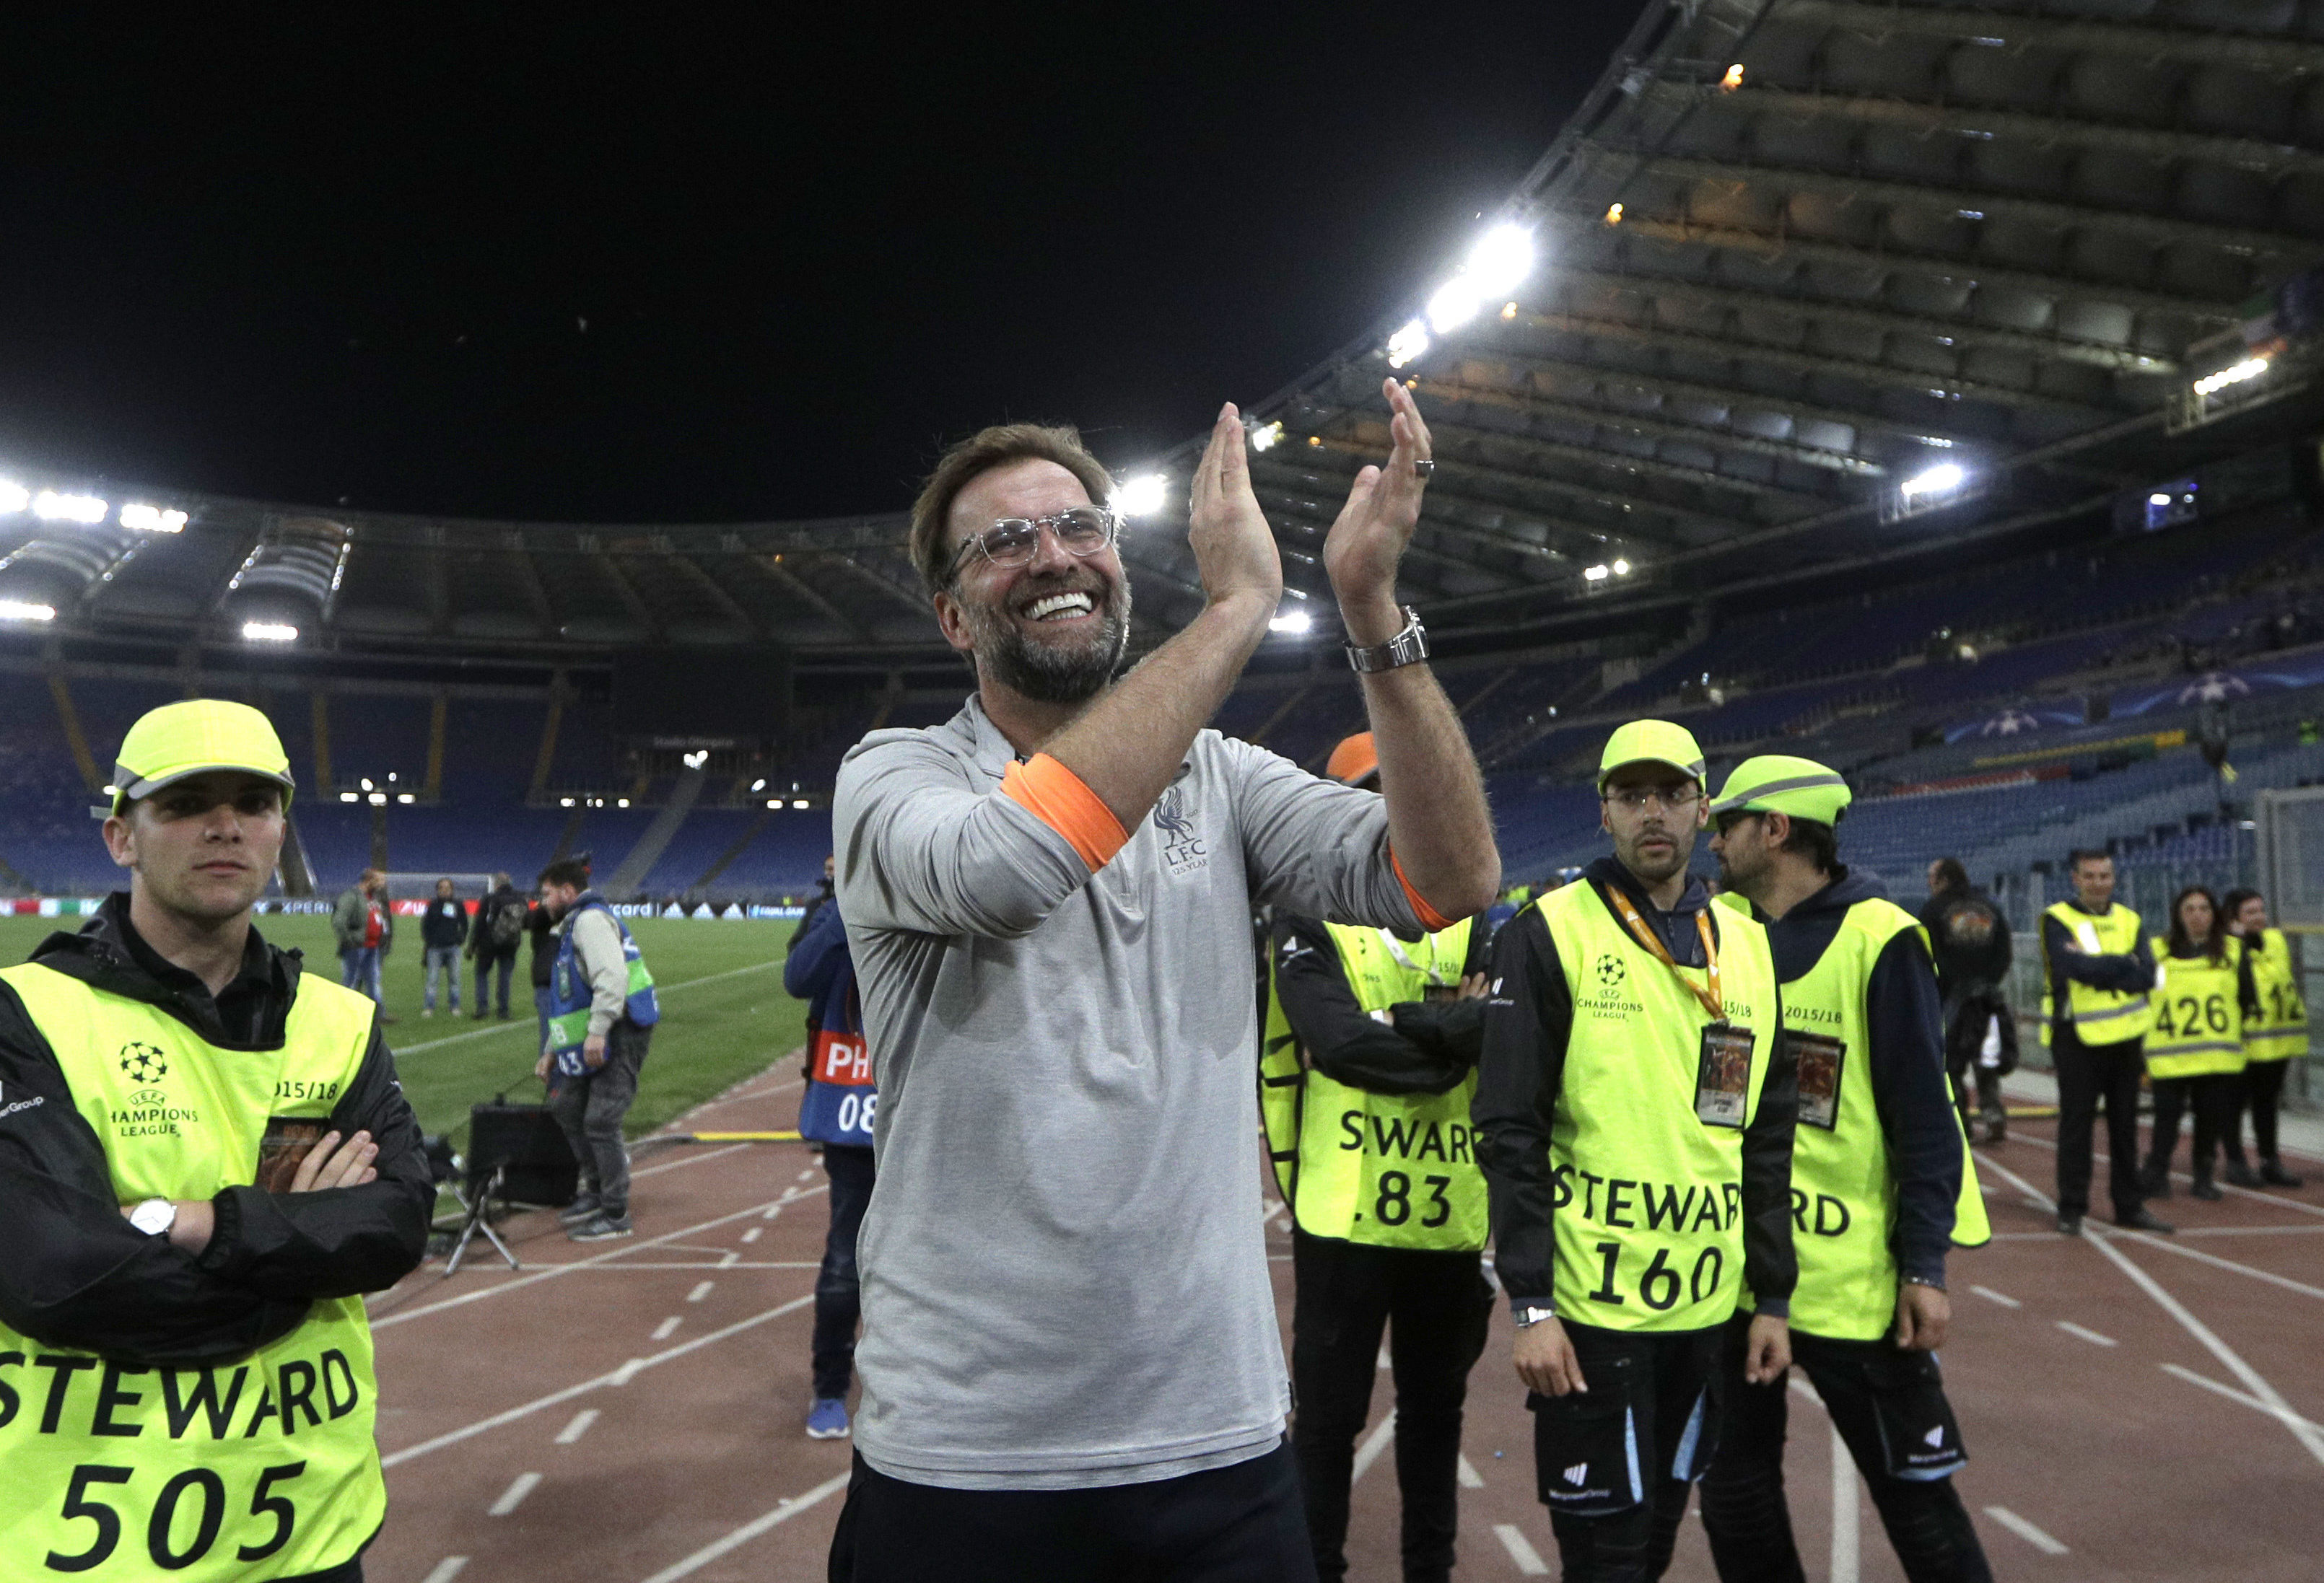 Liverpool coach Jurgen Klopp celebrates with the supporters at the end of the Champions League semifinal second leg soccer match between Roma and Liverpool at the Olympic Stadium in Rome, Wednesday, May 2, 2018